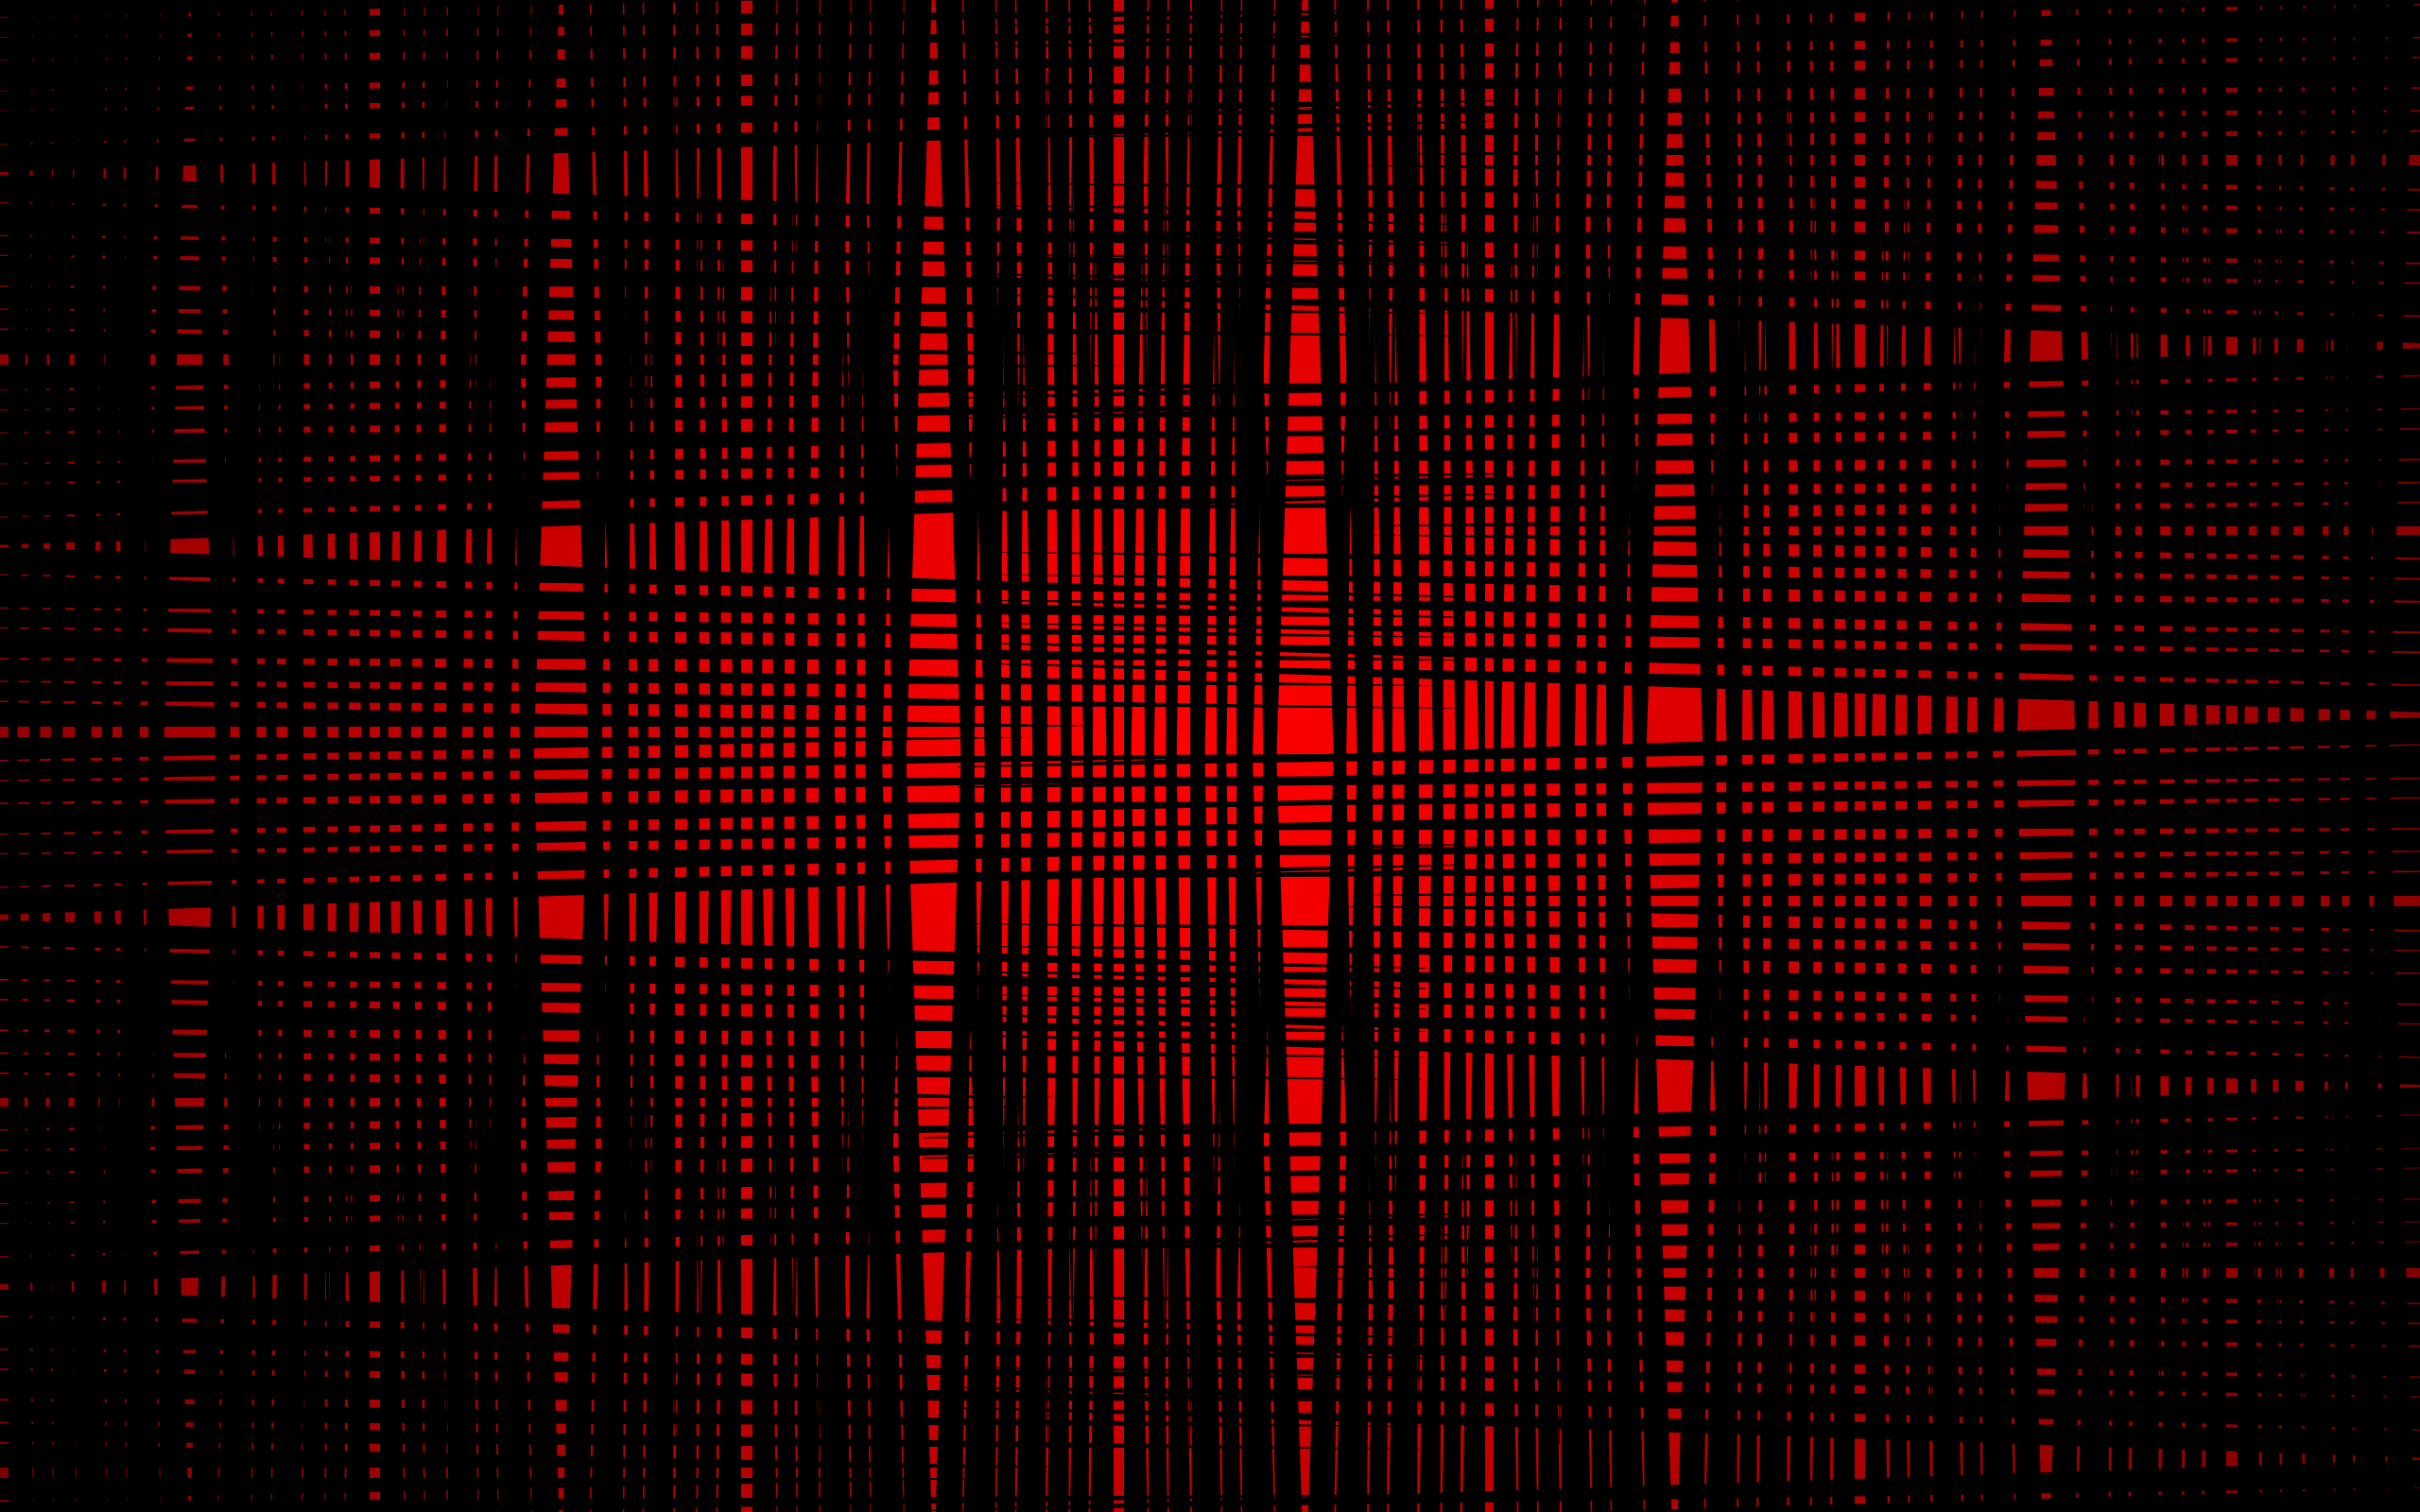 Hd wallpaper red and black - Red And Black Background Picture 27 Background Red And Black Background Picture 27 Background